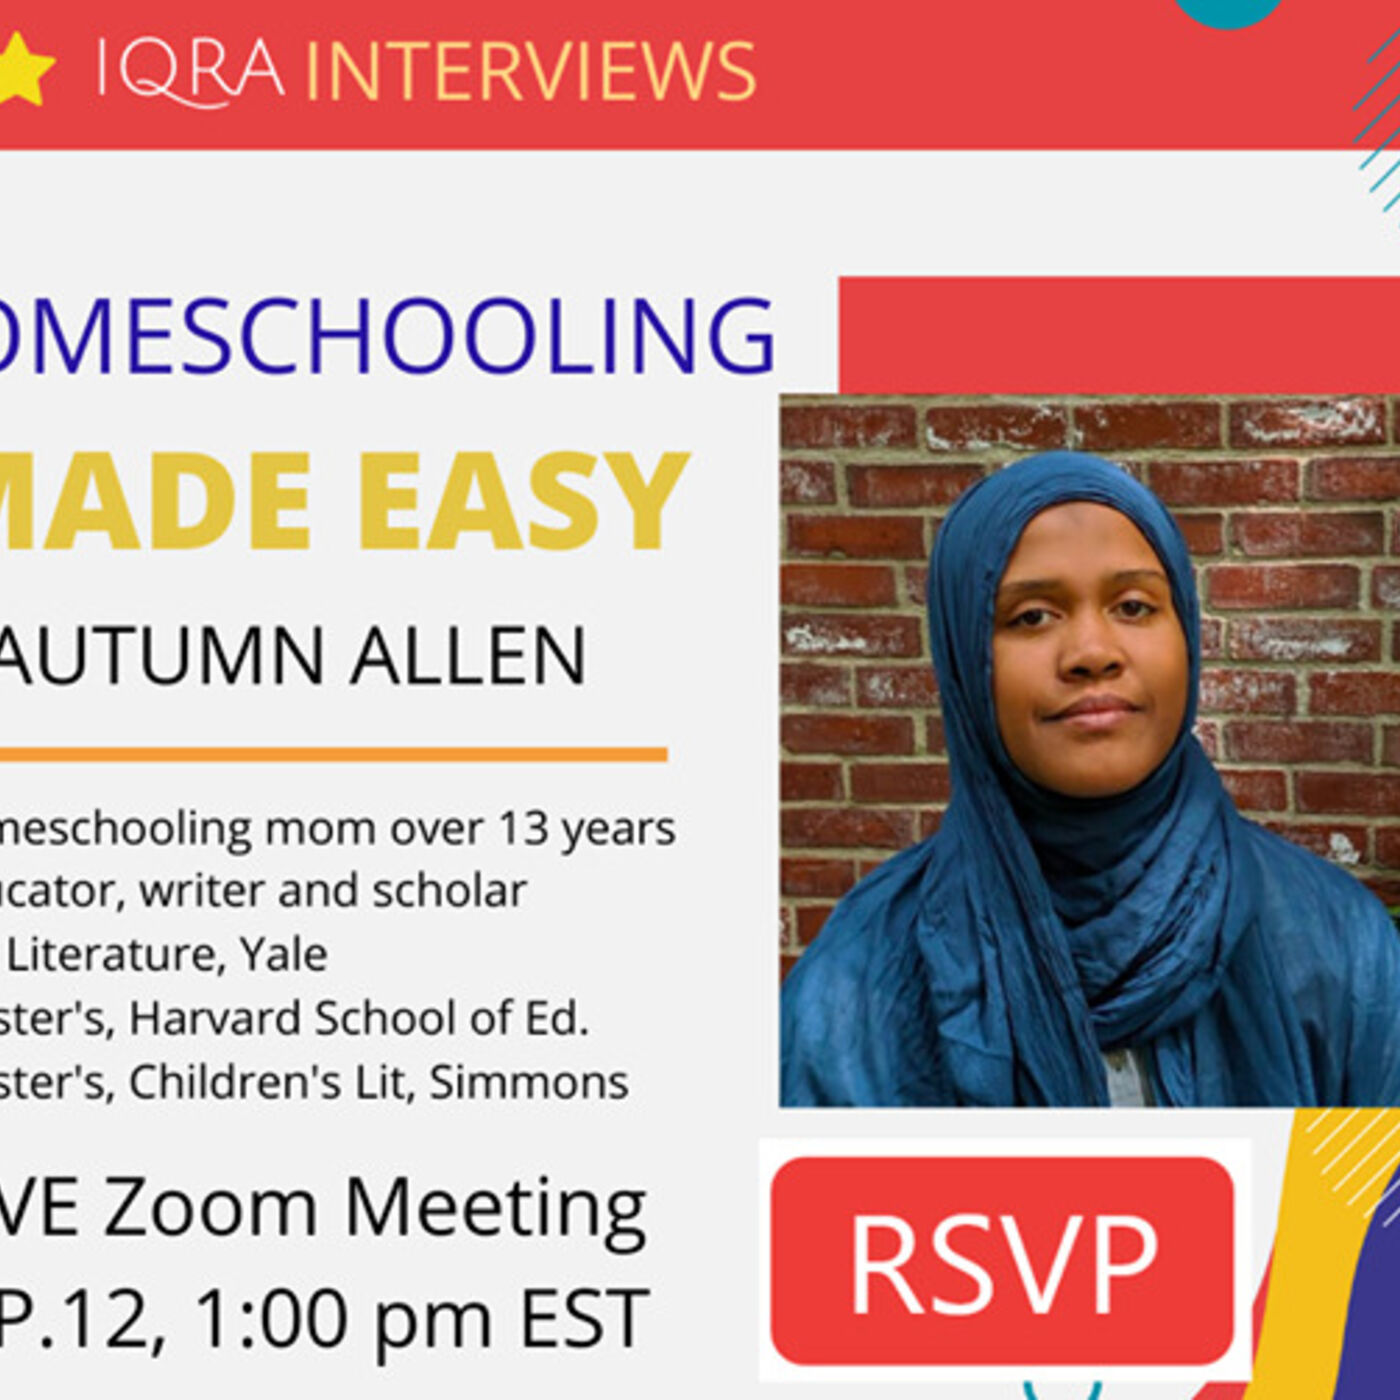 Homeschooling Made Easy | Interview with Ms. Autumn Allen